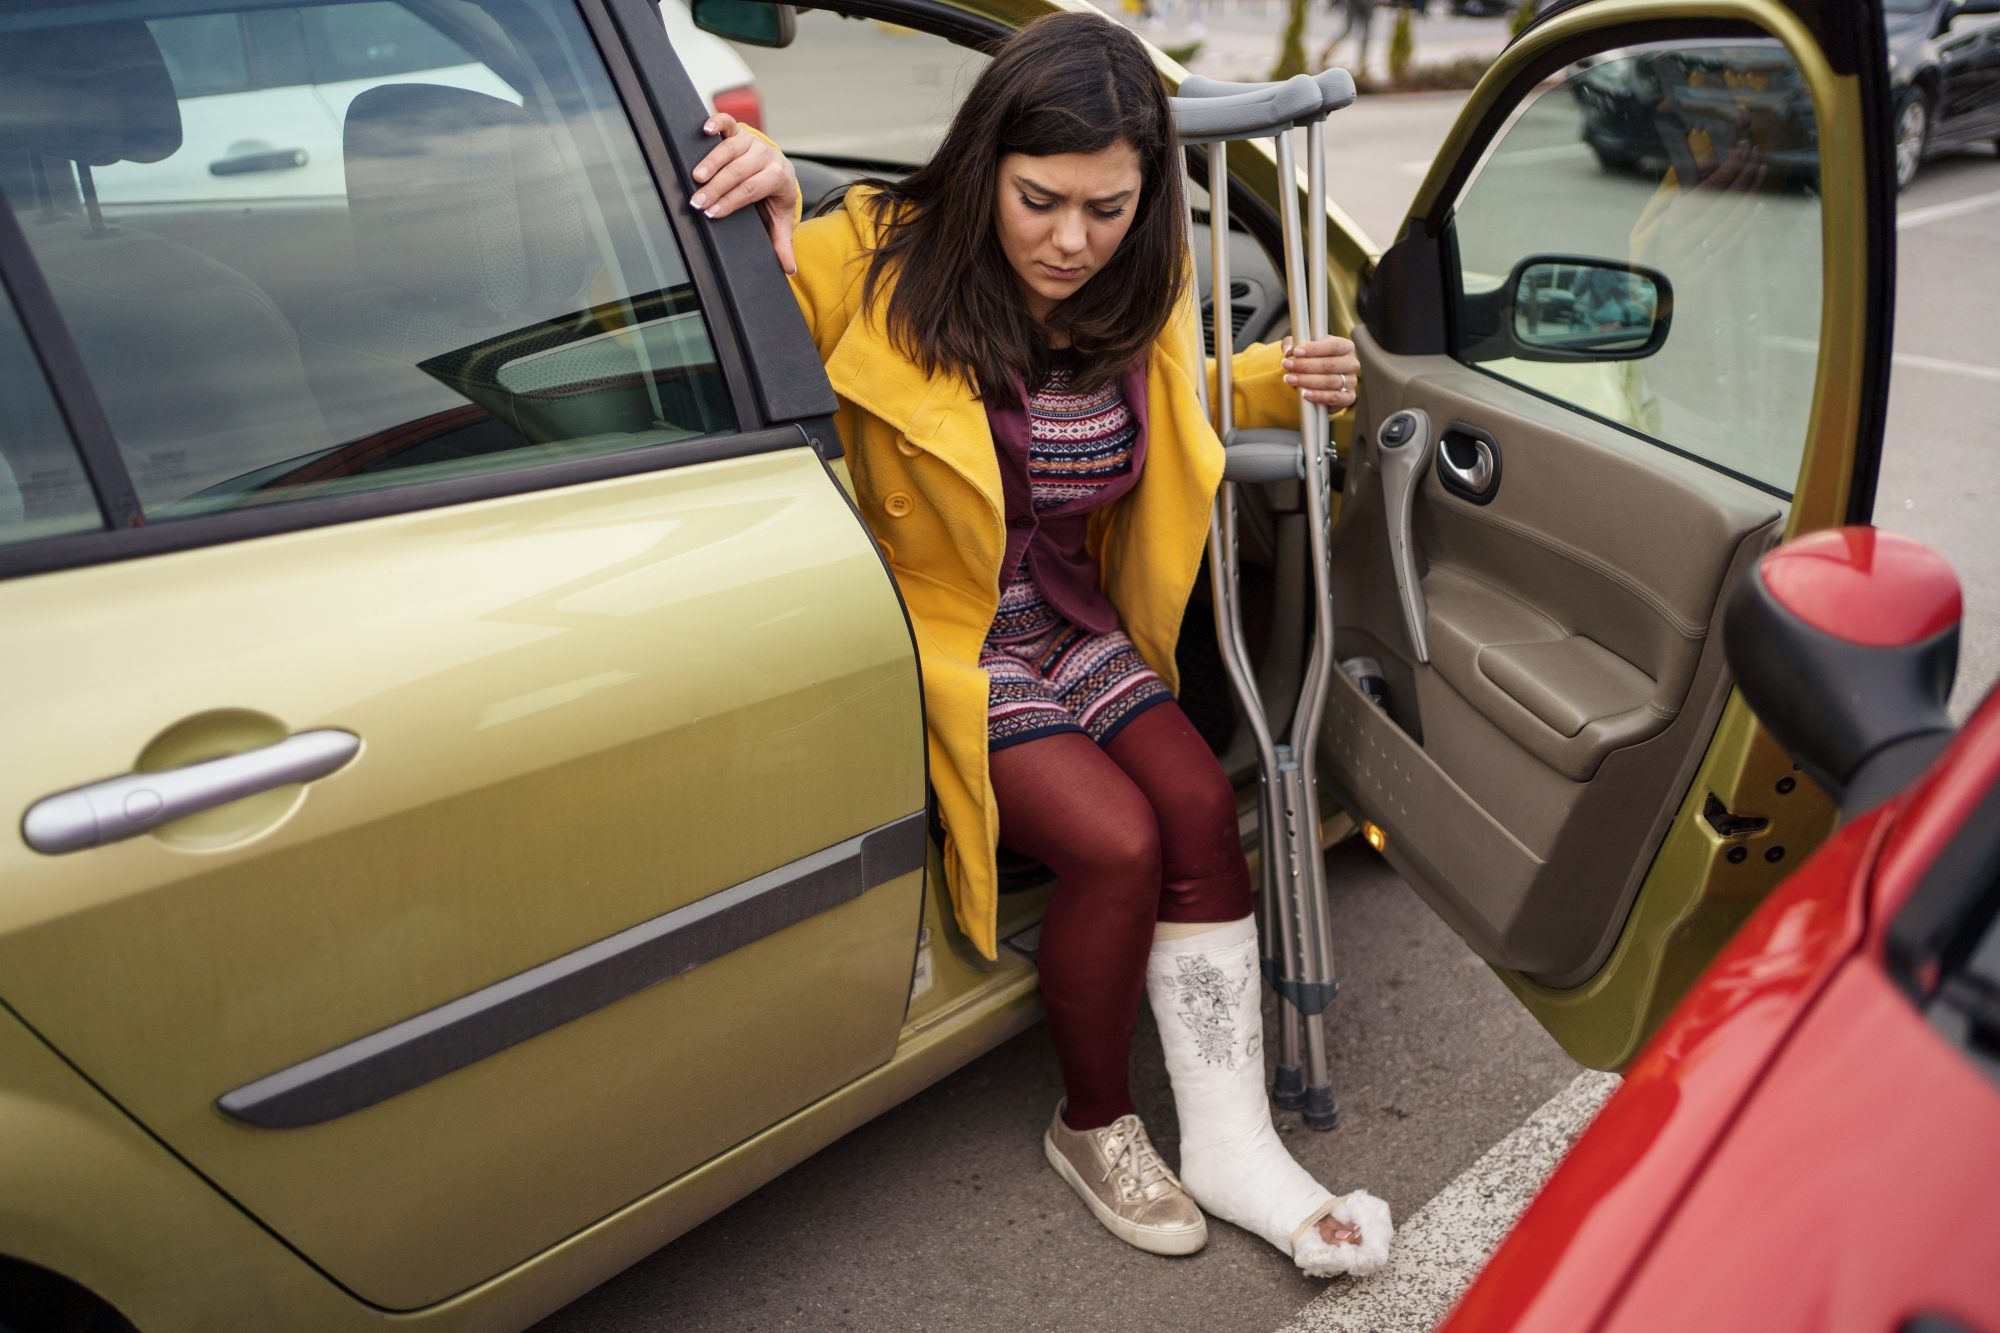 Woman with cast getting out of car